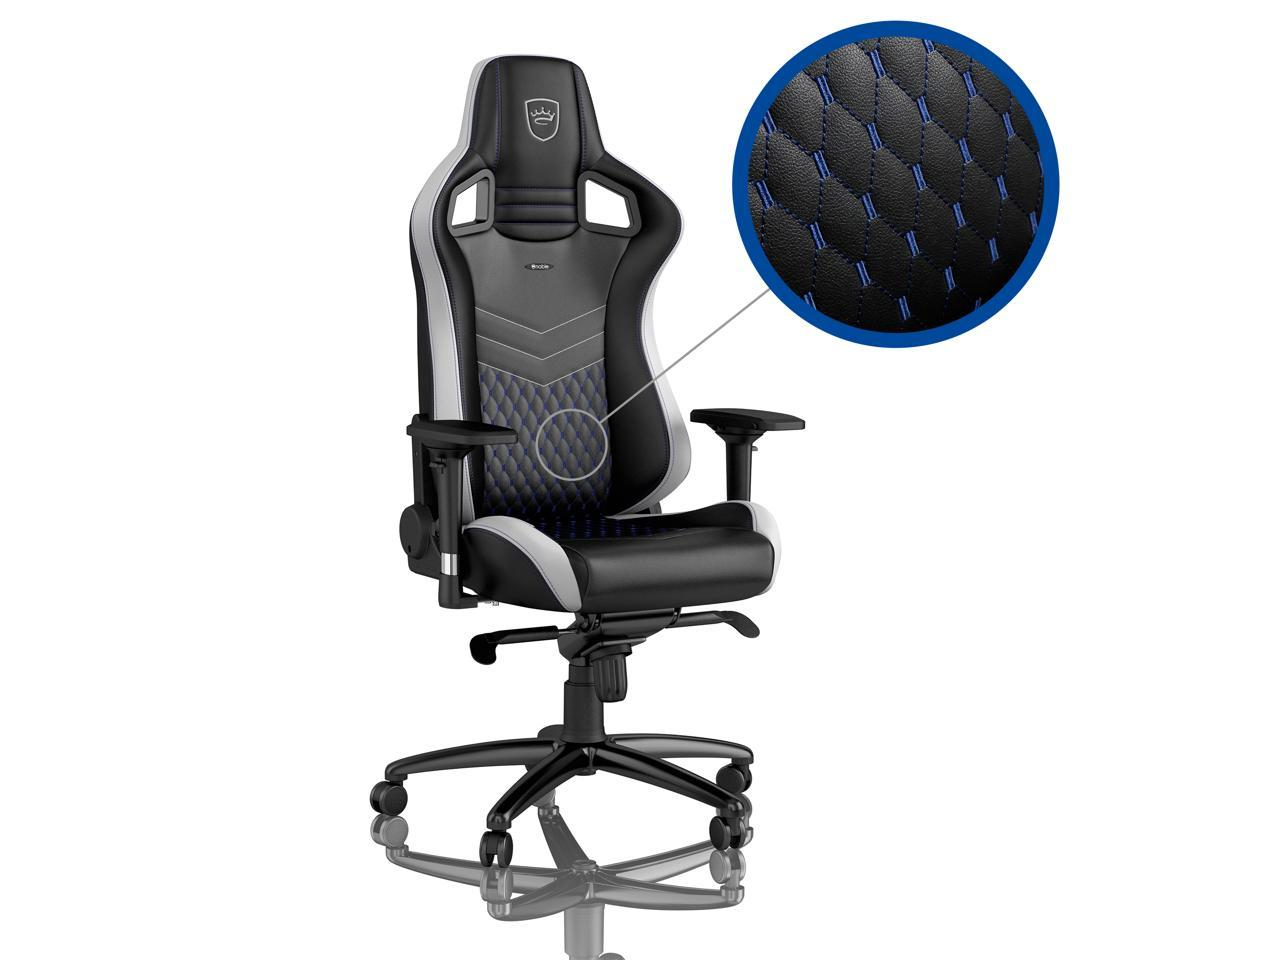 newegg hot noblechairs gaming chairs starting at forums. Black Bedroom Furniture Sets. Home Design Ideas